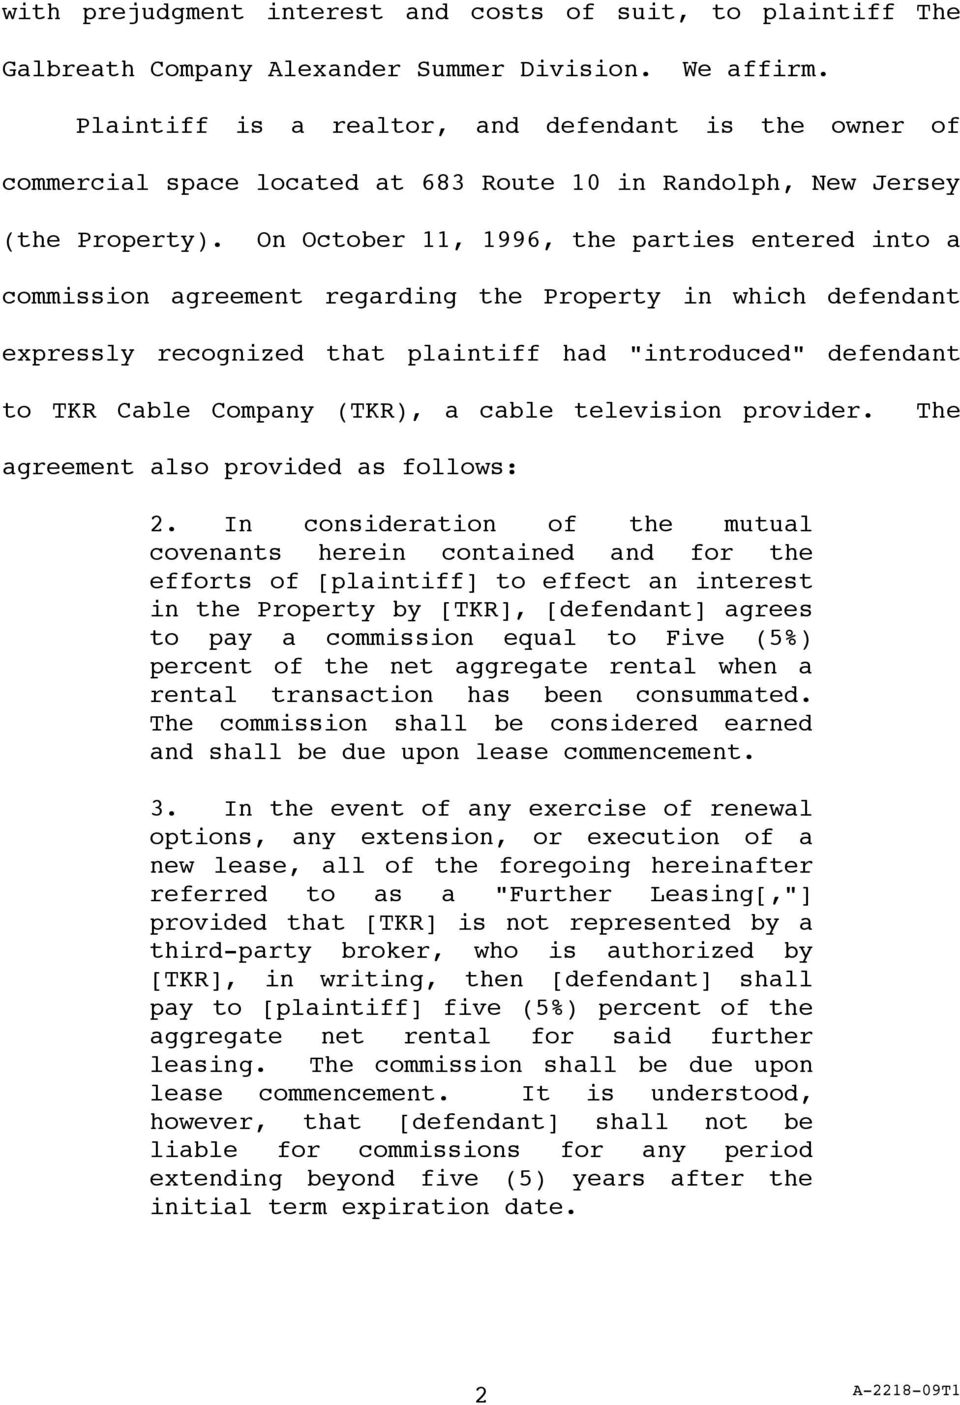 "On October 11, 1996, the parties entered into a commission agreement regarding the Property in which defendant expressly recognized that plaintiff had ""introduced"" defendant to TKR Cable Company"